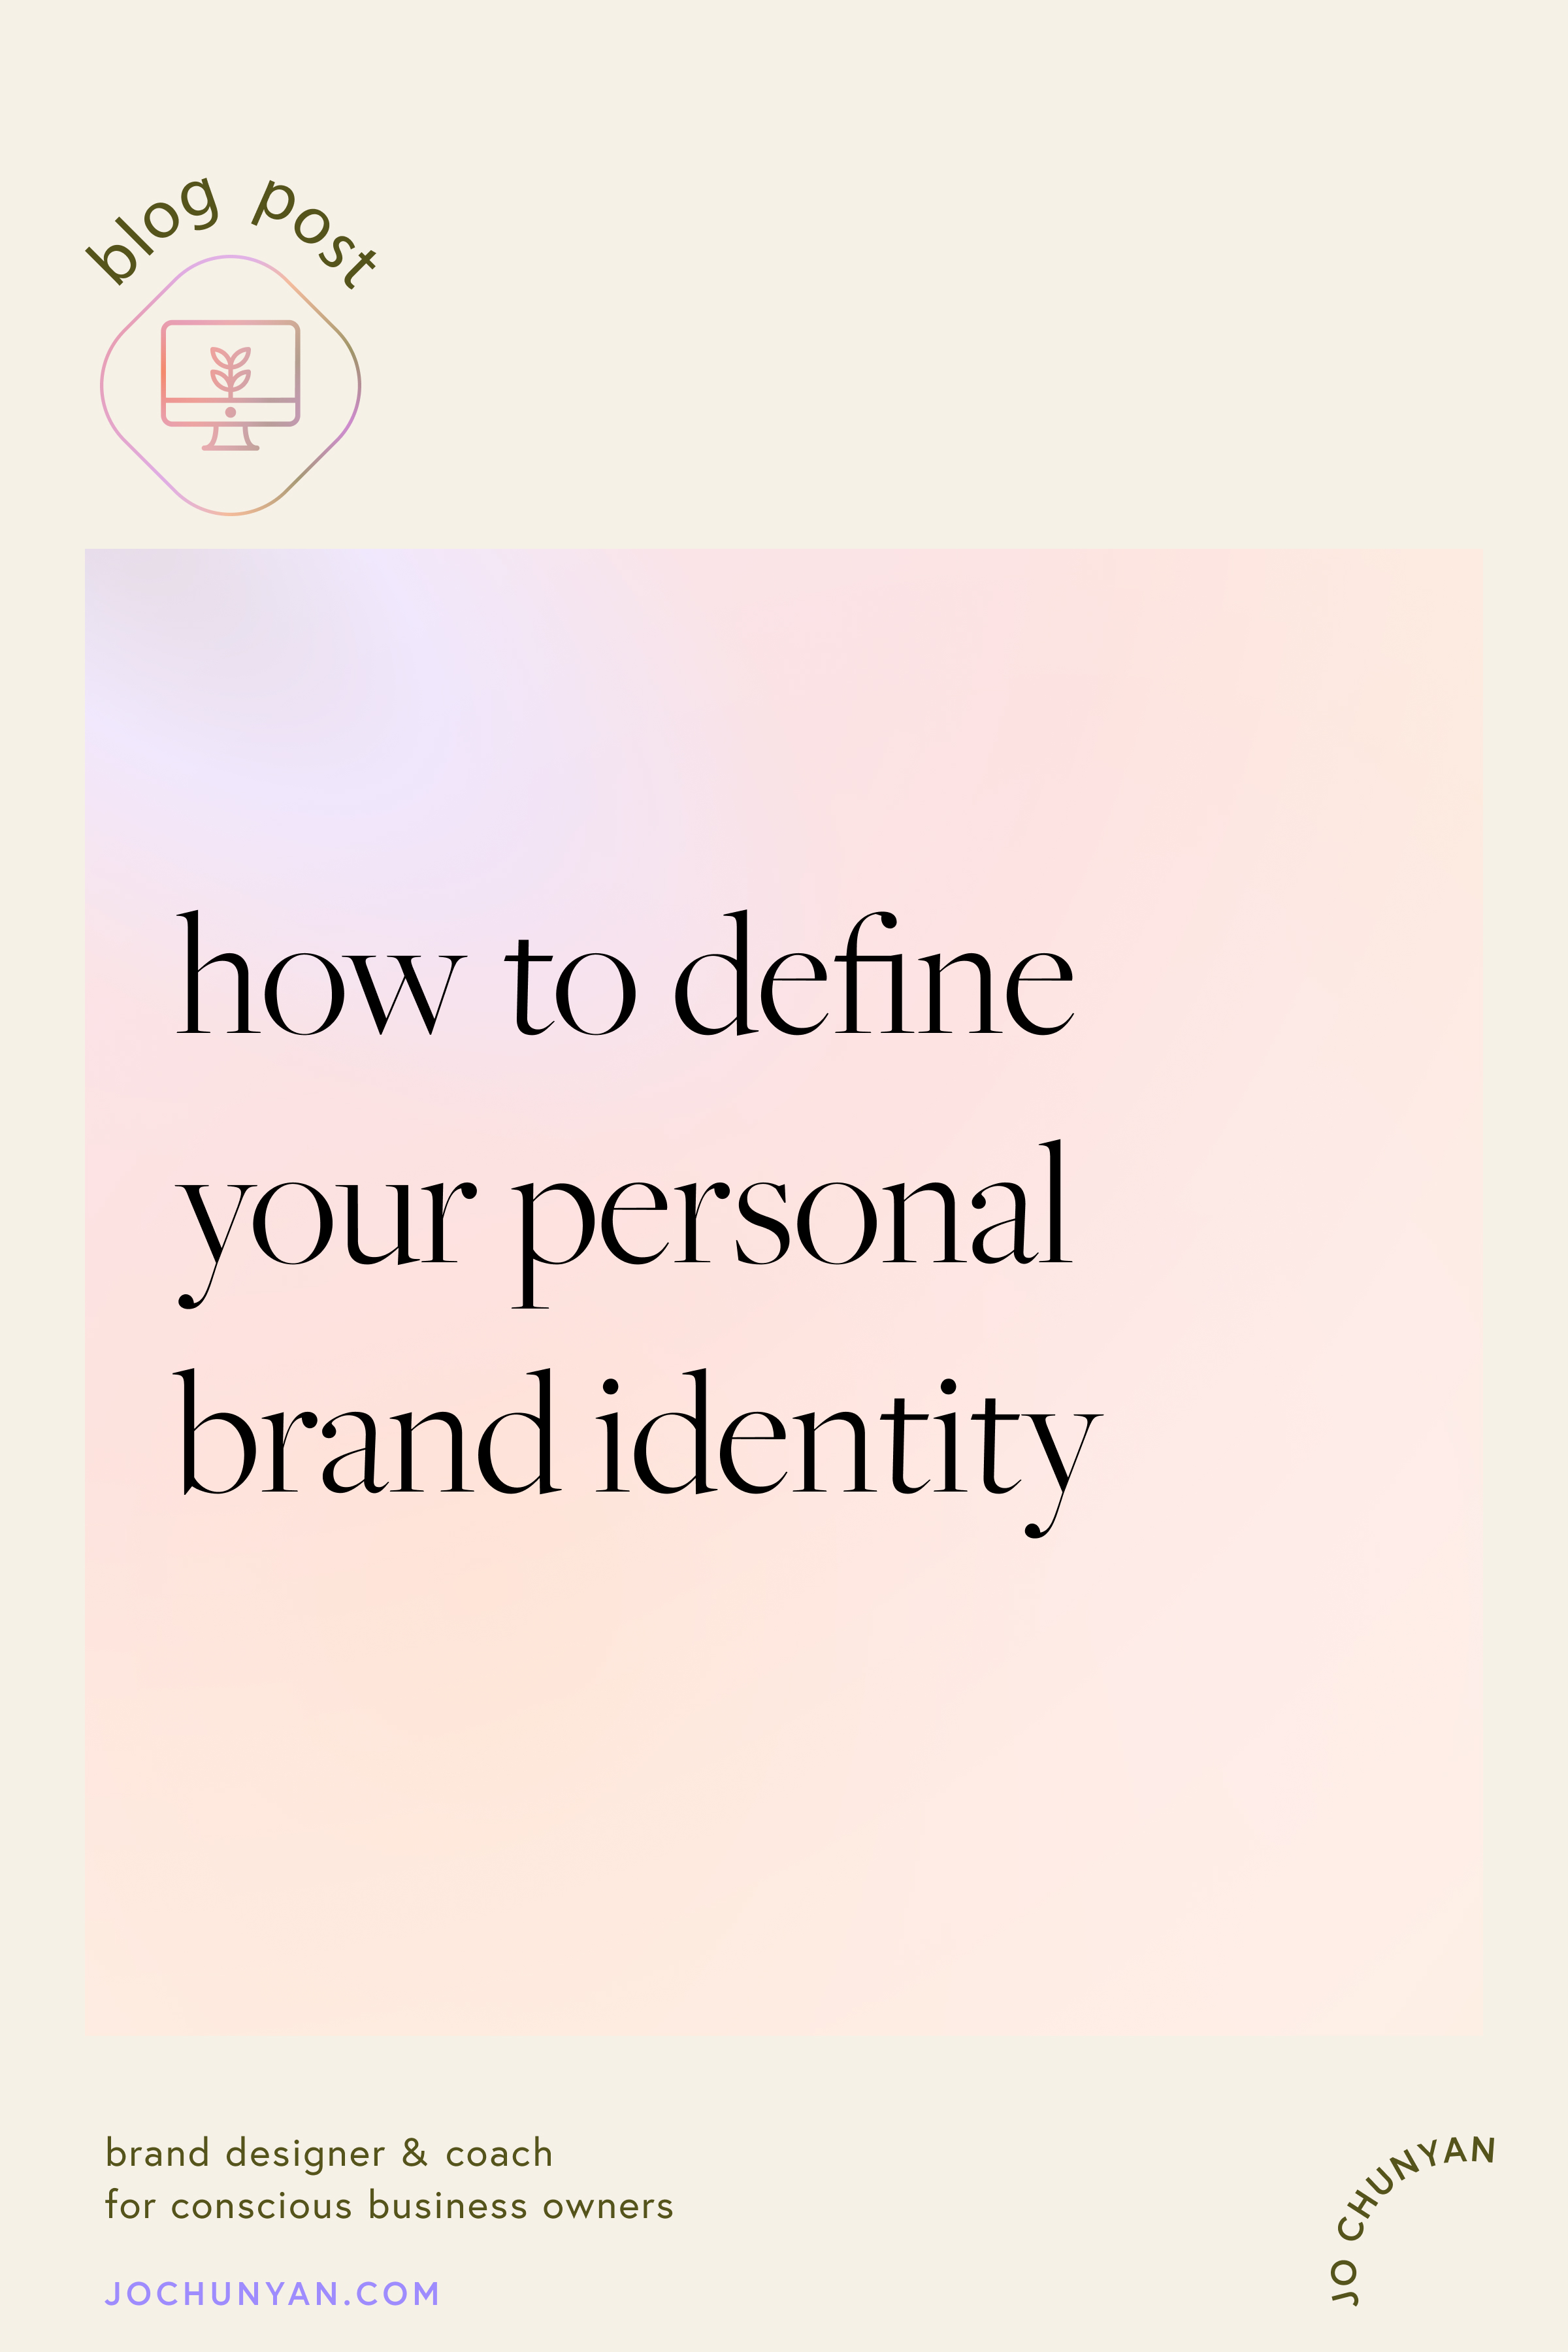 How to define your personal brand identity